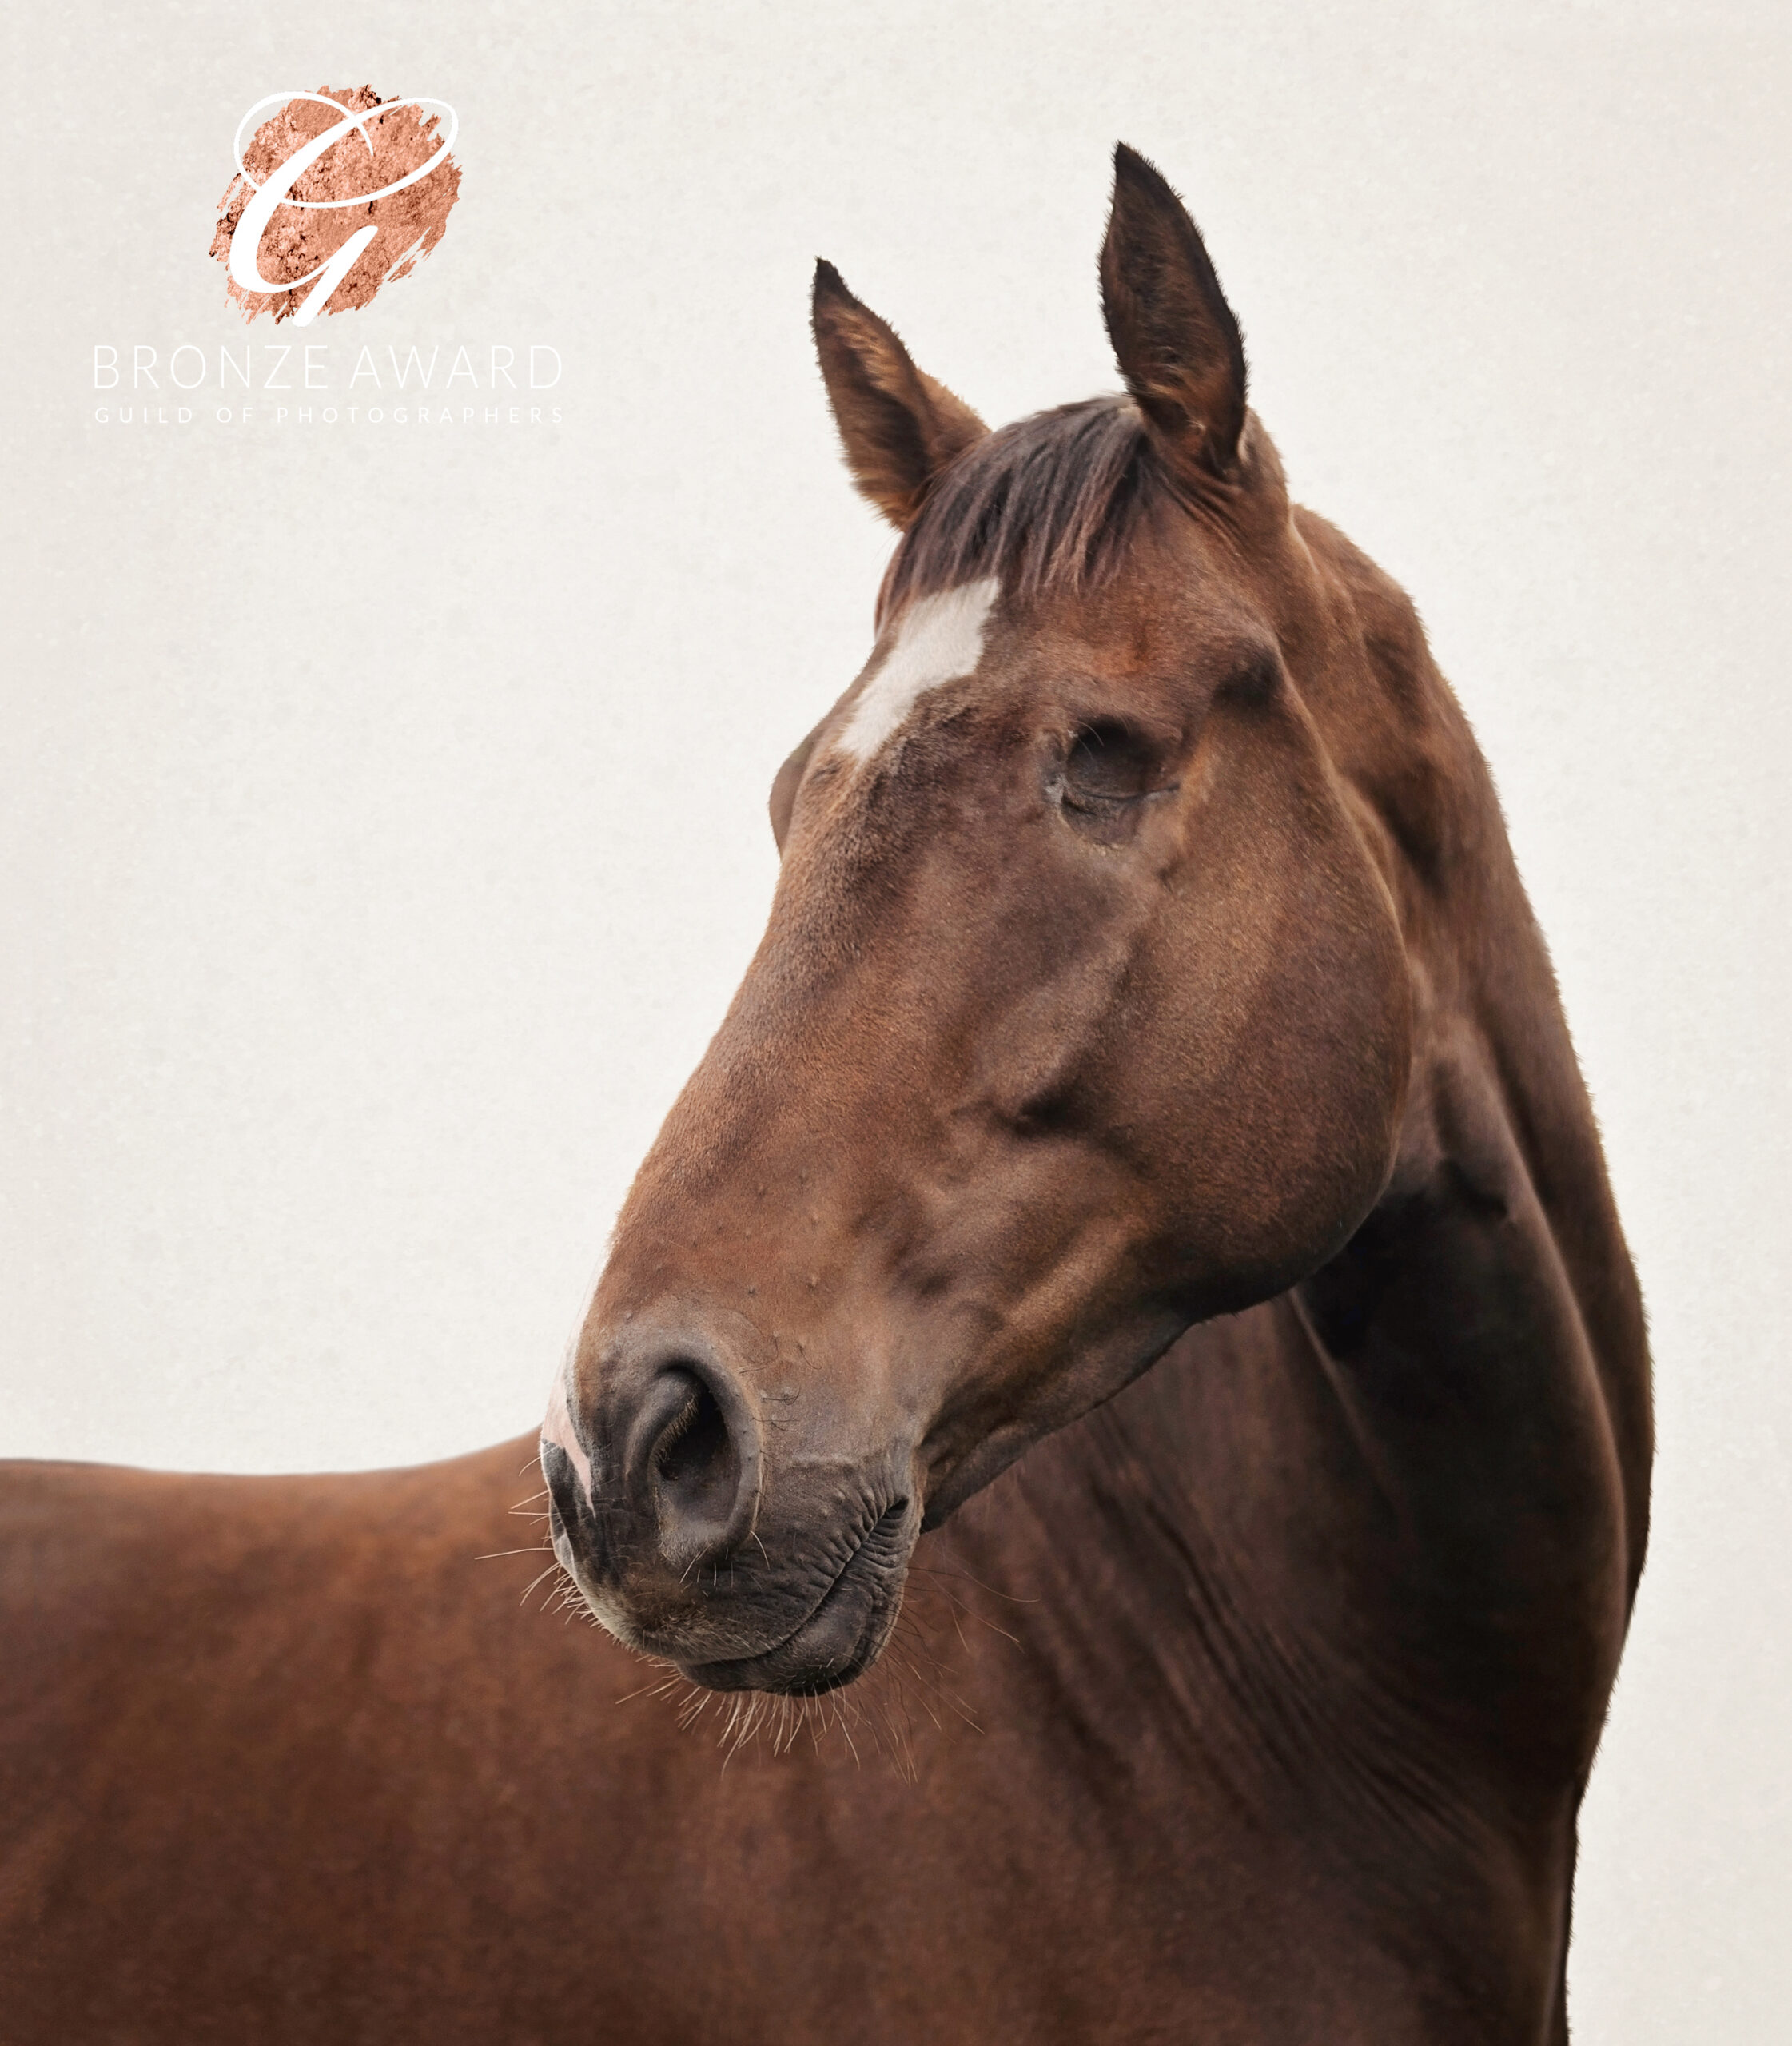 Young Racehorse, photographed by Emma Campbell